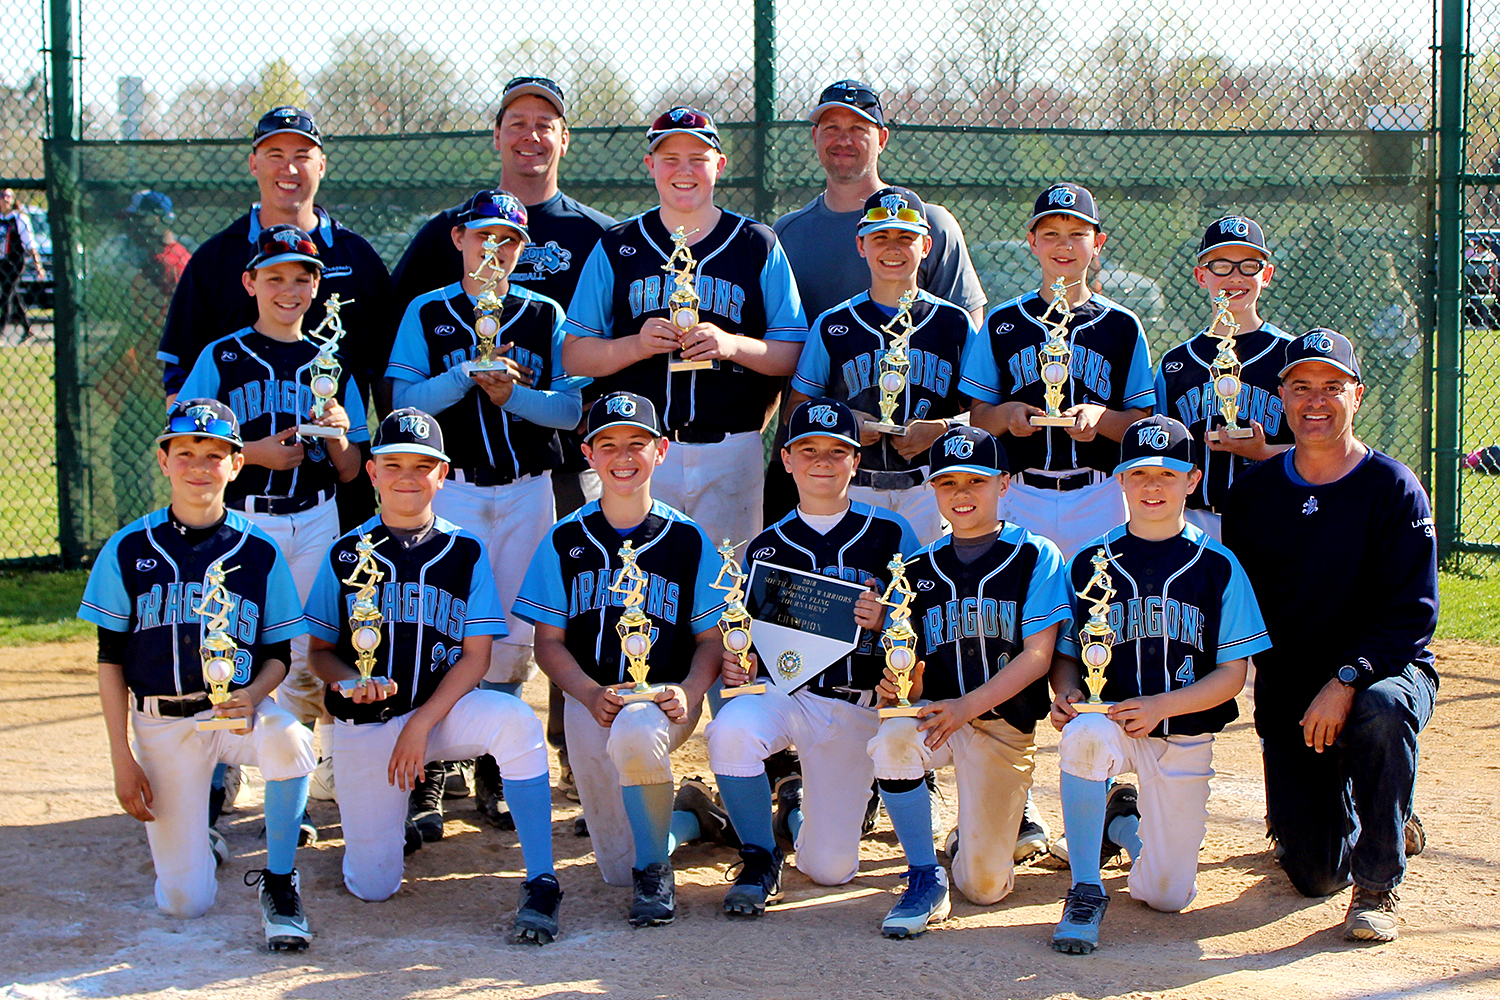 11U West Chester Dragons NL baseball team won the South Jersey Warriors Spring Fling 2018 Tournament in Swedesboro, New Jersey, on April 22, 2018.